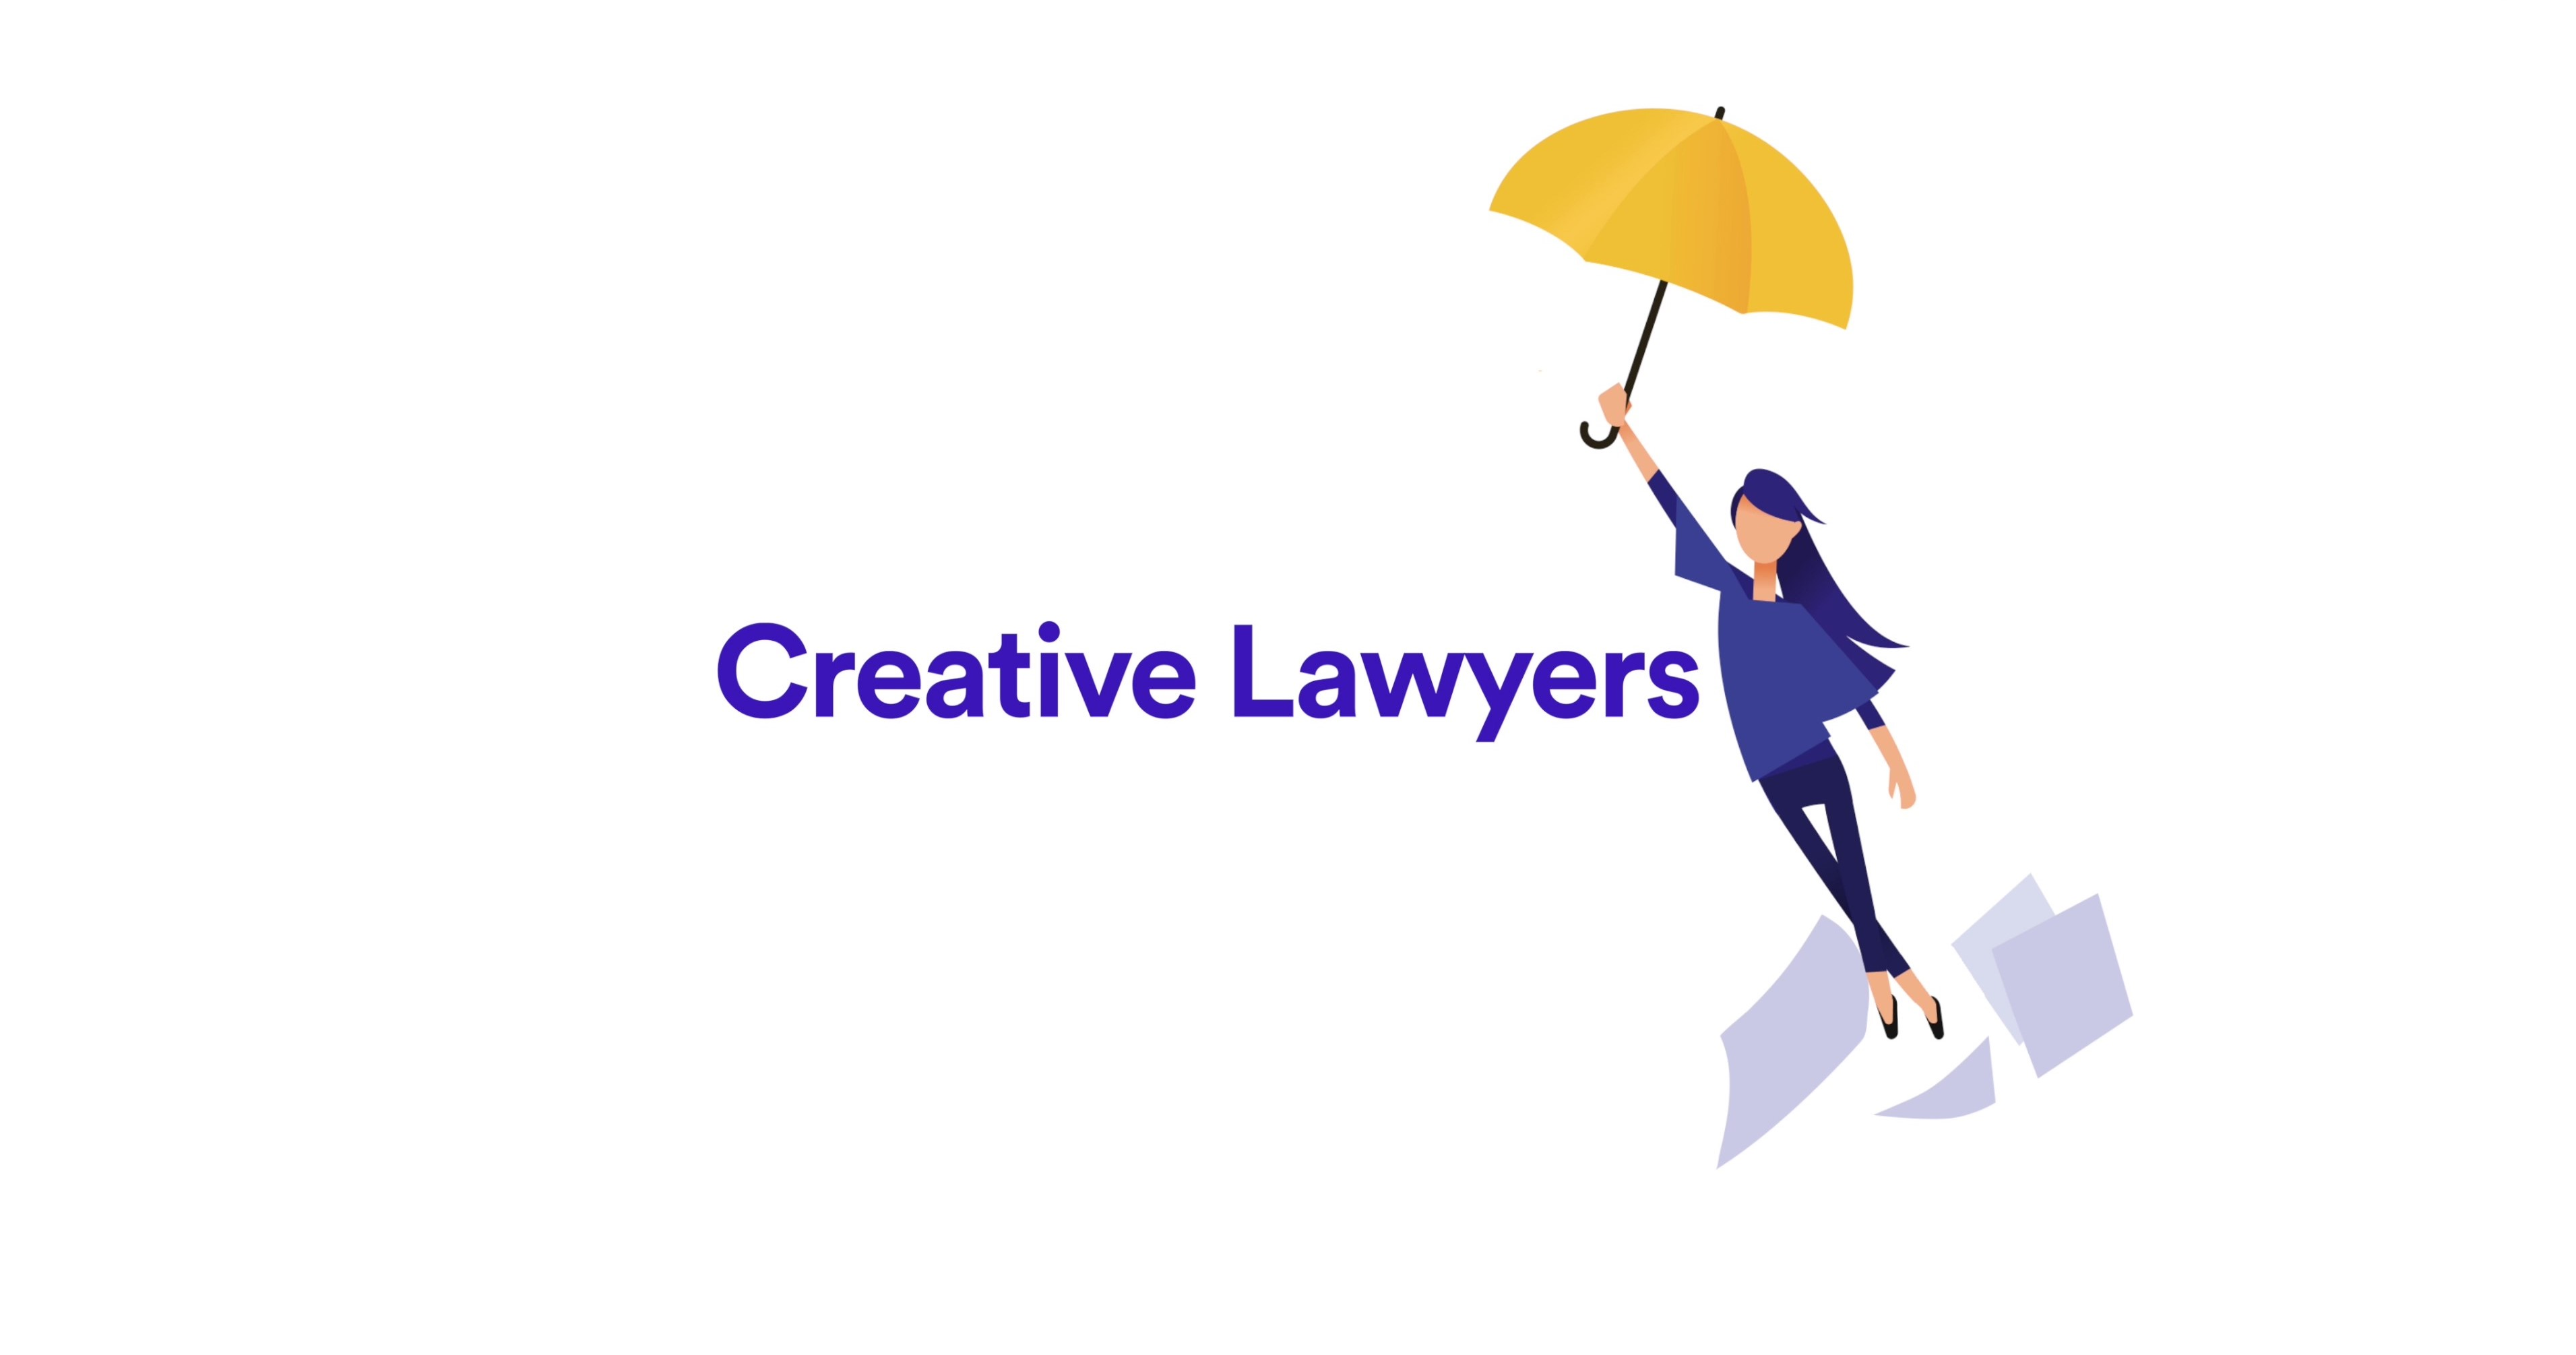 Mary with an umbrella next to Creative Lawyers title